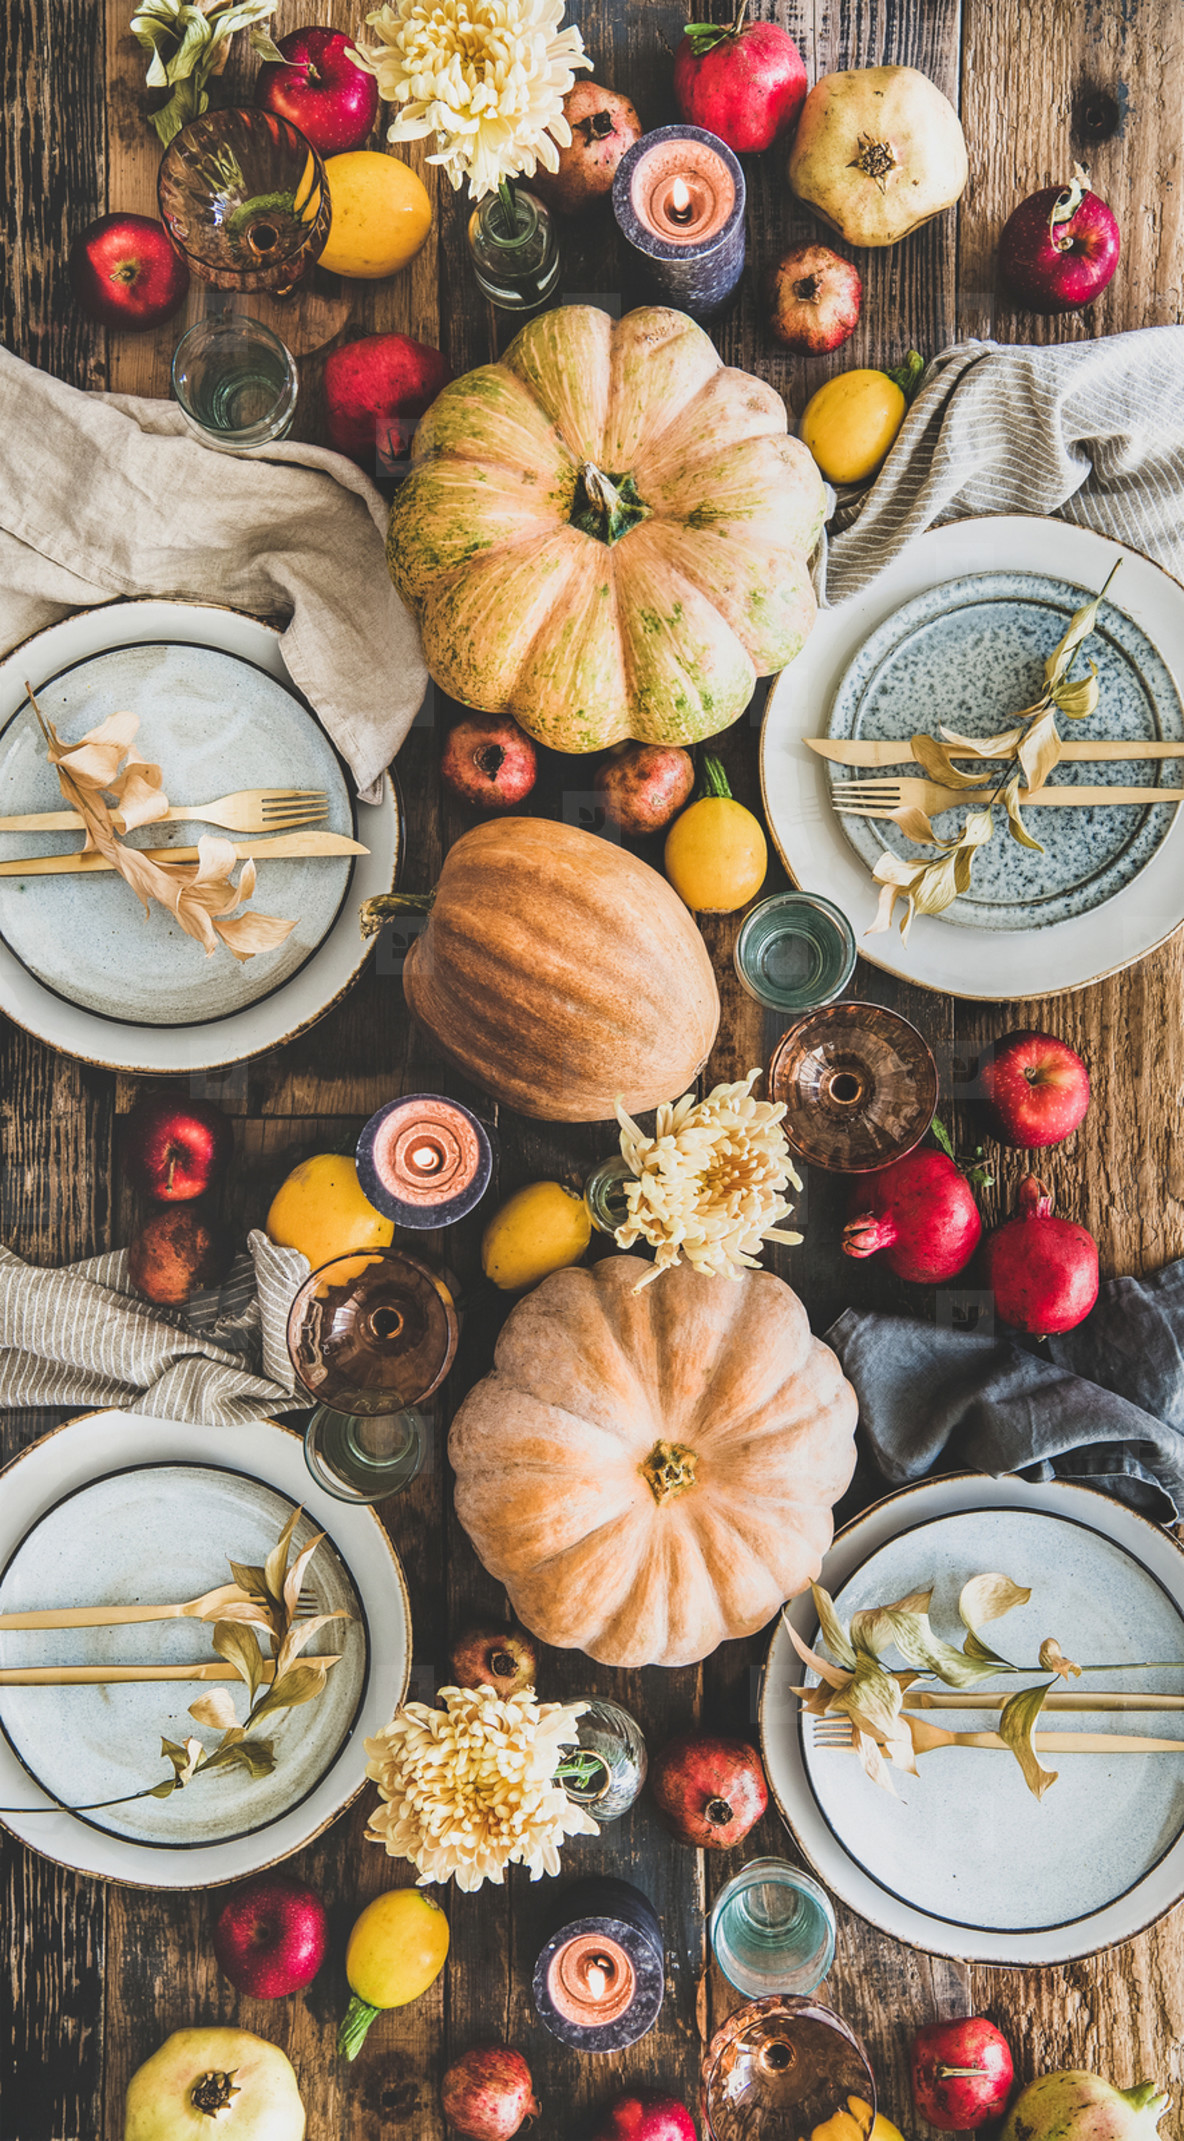 Table setting for Thanksgiving day party with fruits and candles